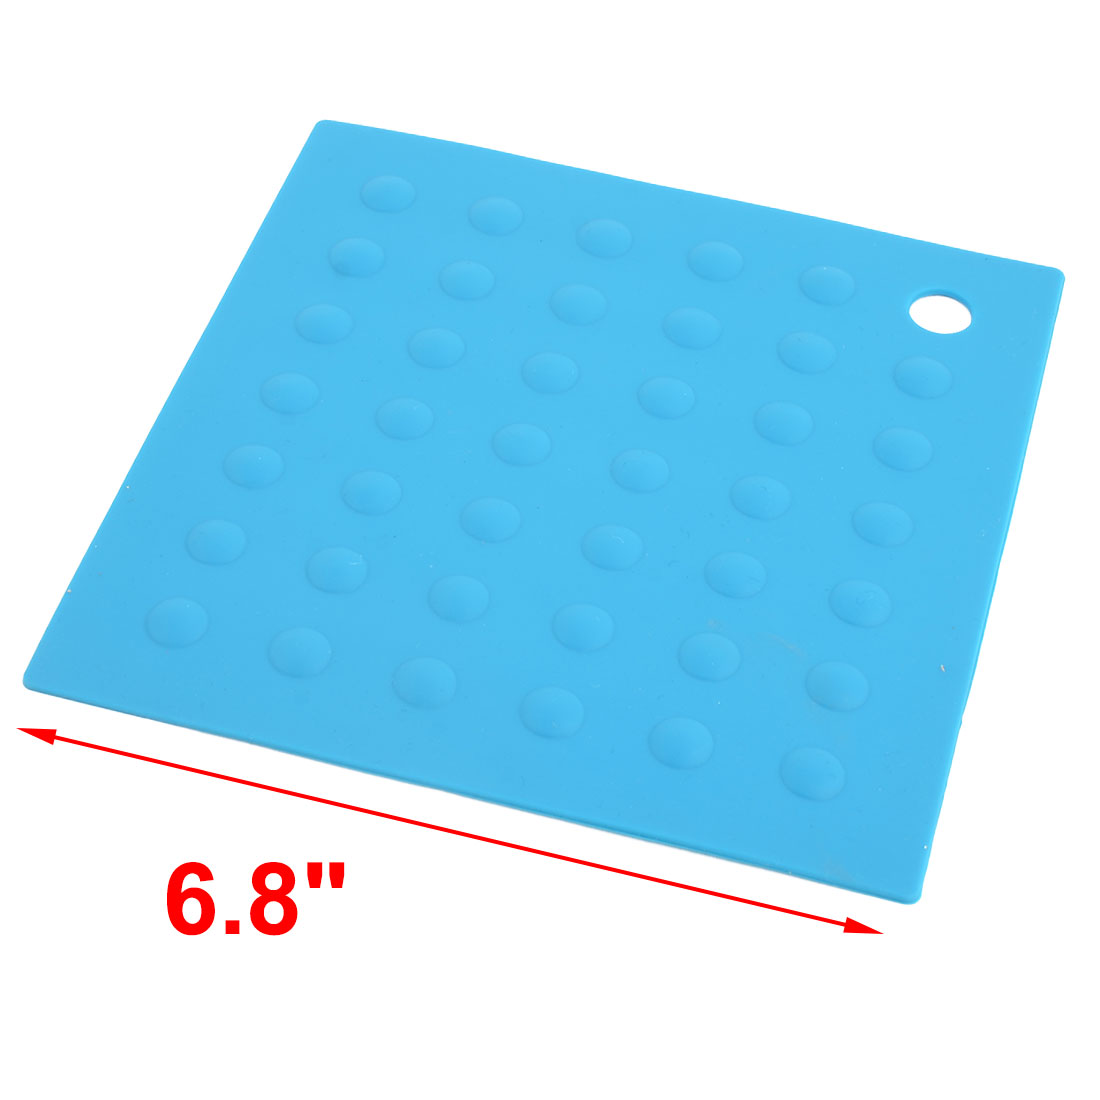 Silicone Square Heat Resistant Bowl Plate Mat Table Protection Pad Teal Blue - image 1 of 4